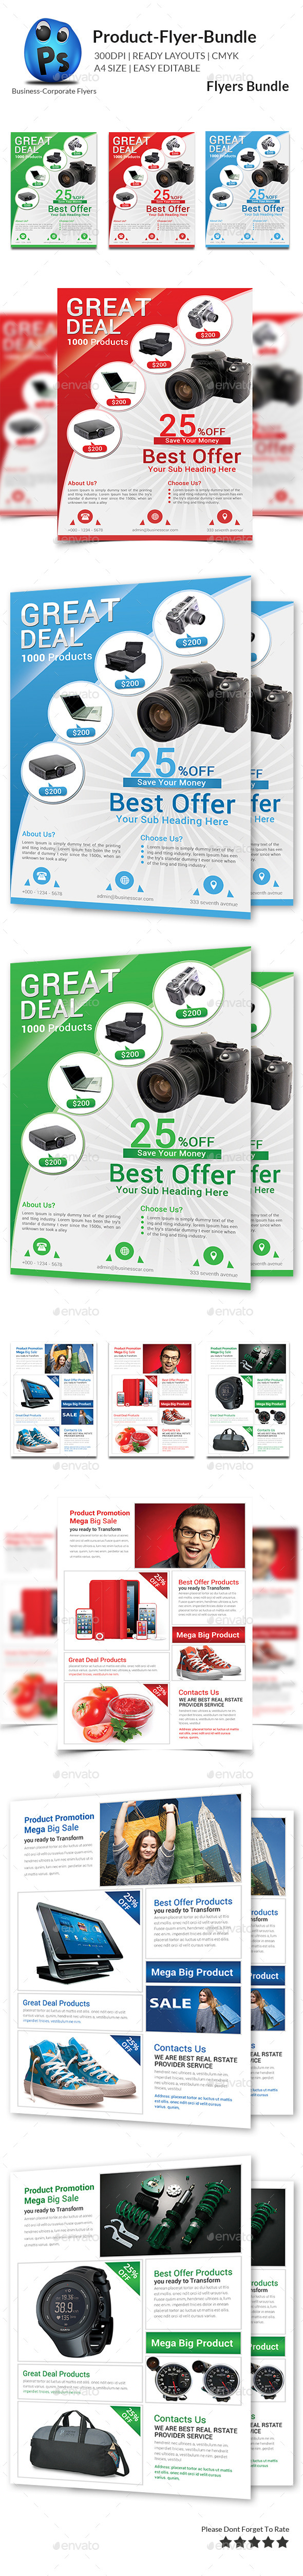 GraphicRiver Product Promotion Flyer Bundle 11146211